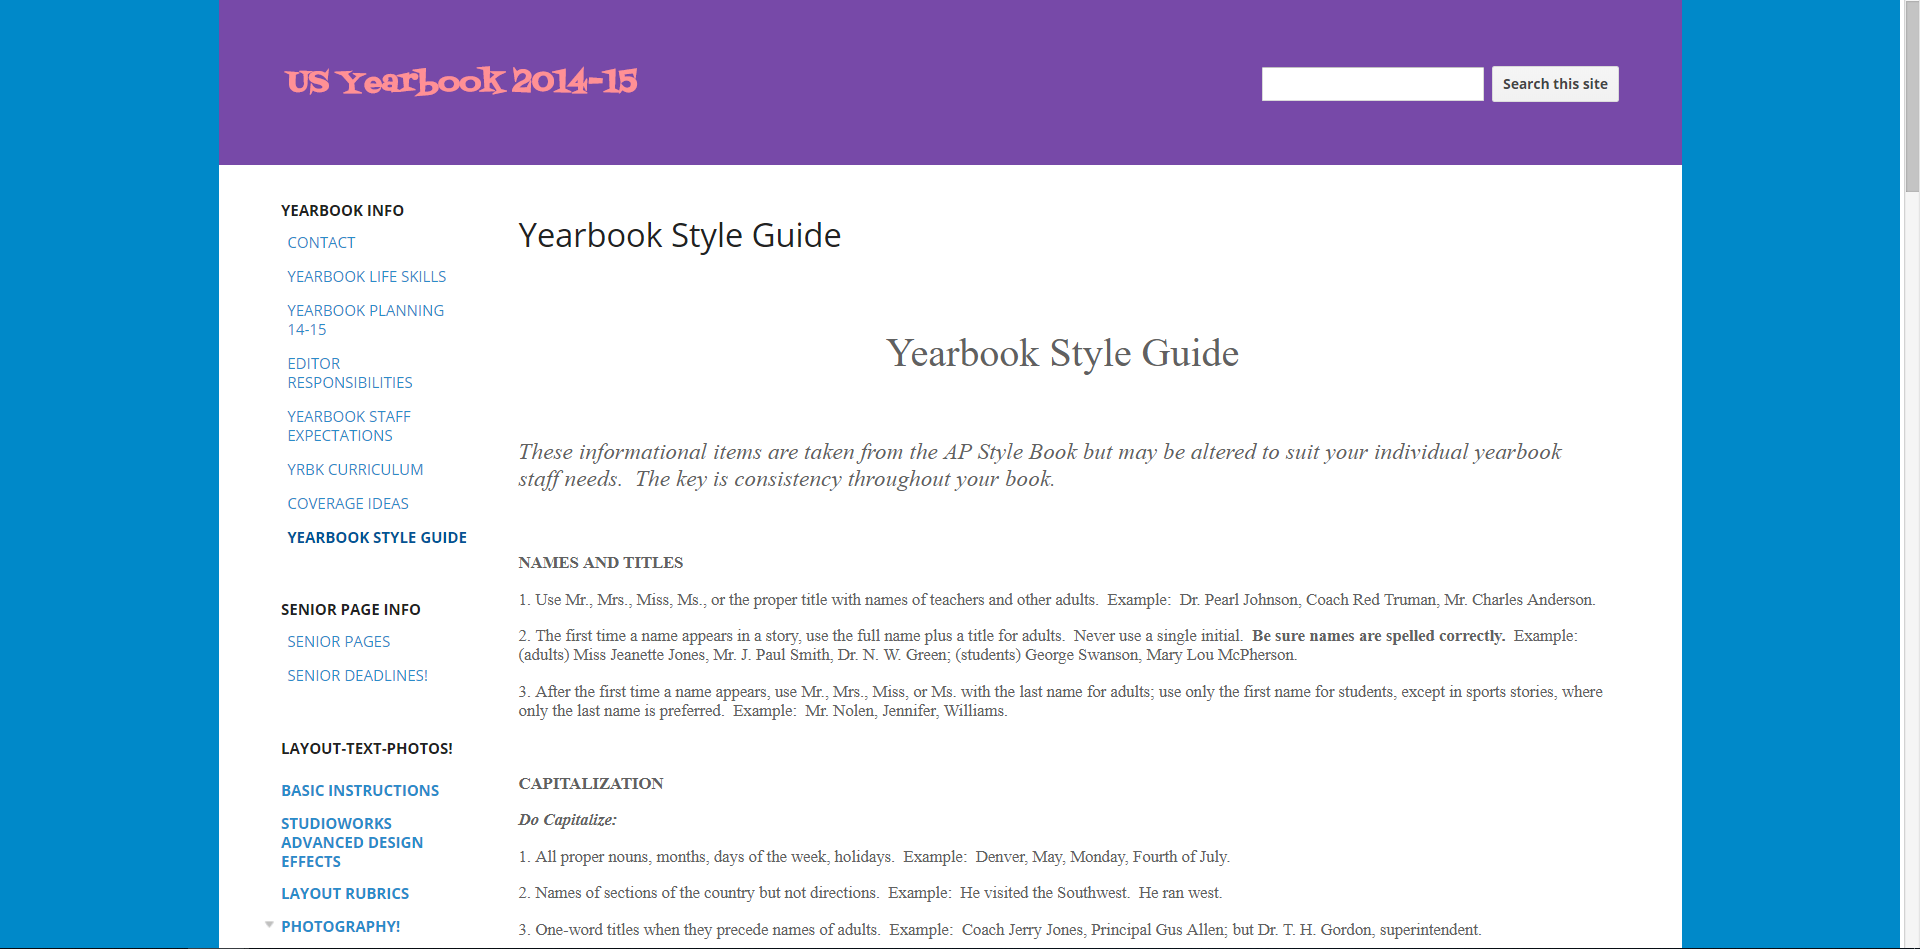 Yearbook Style Guide